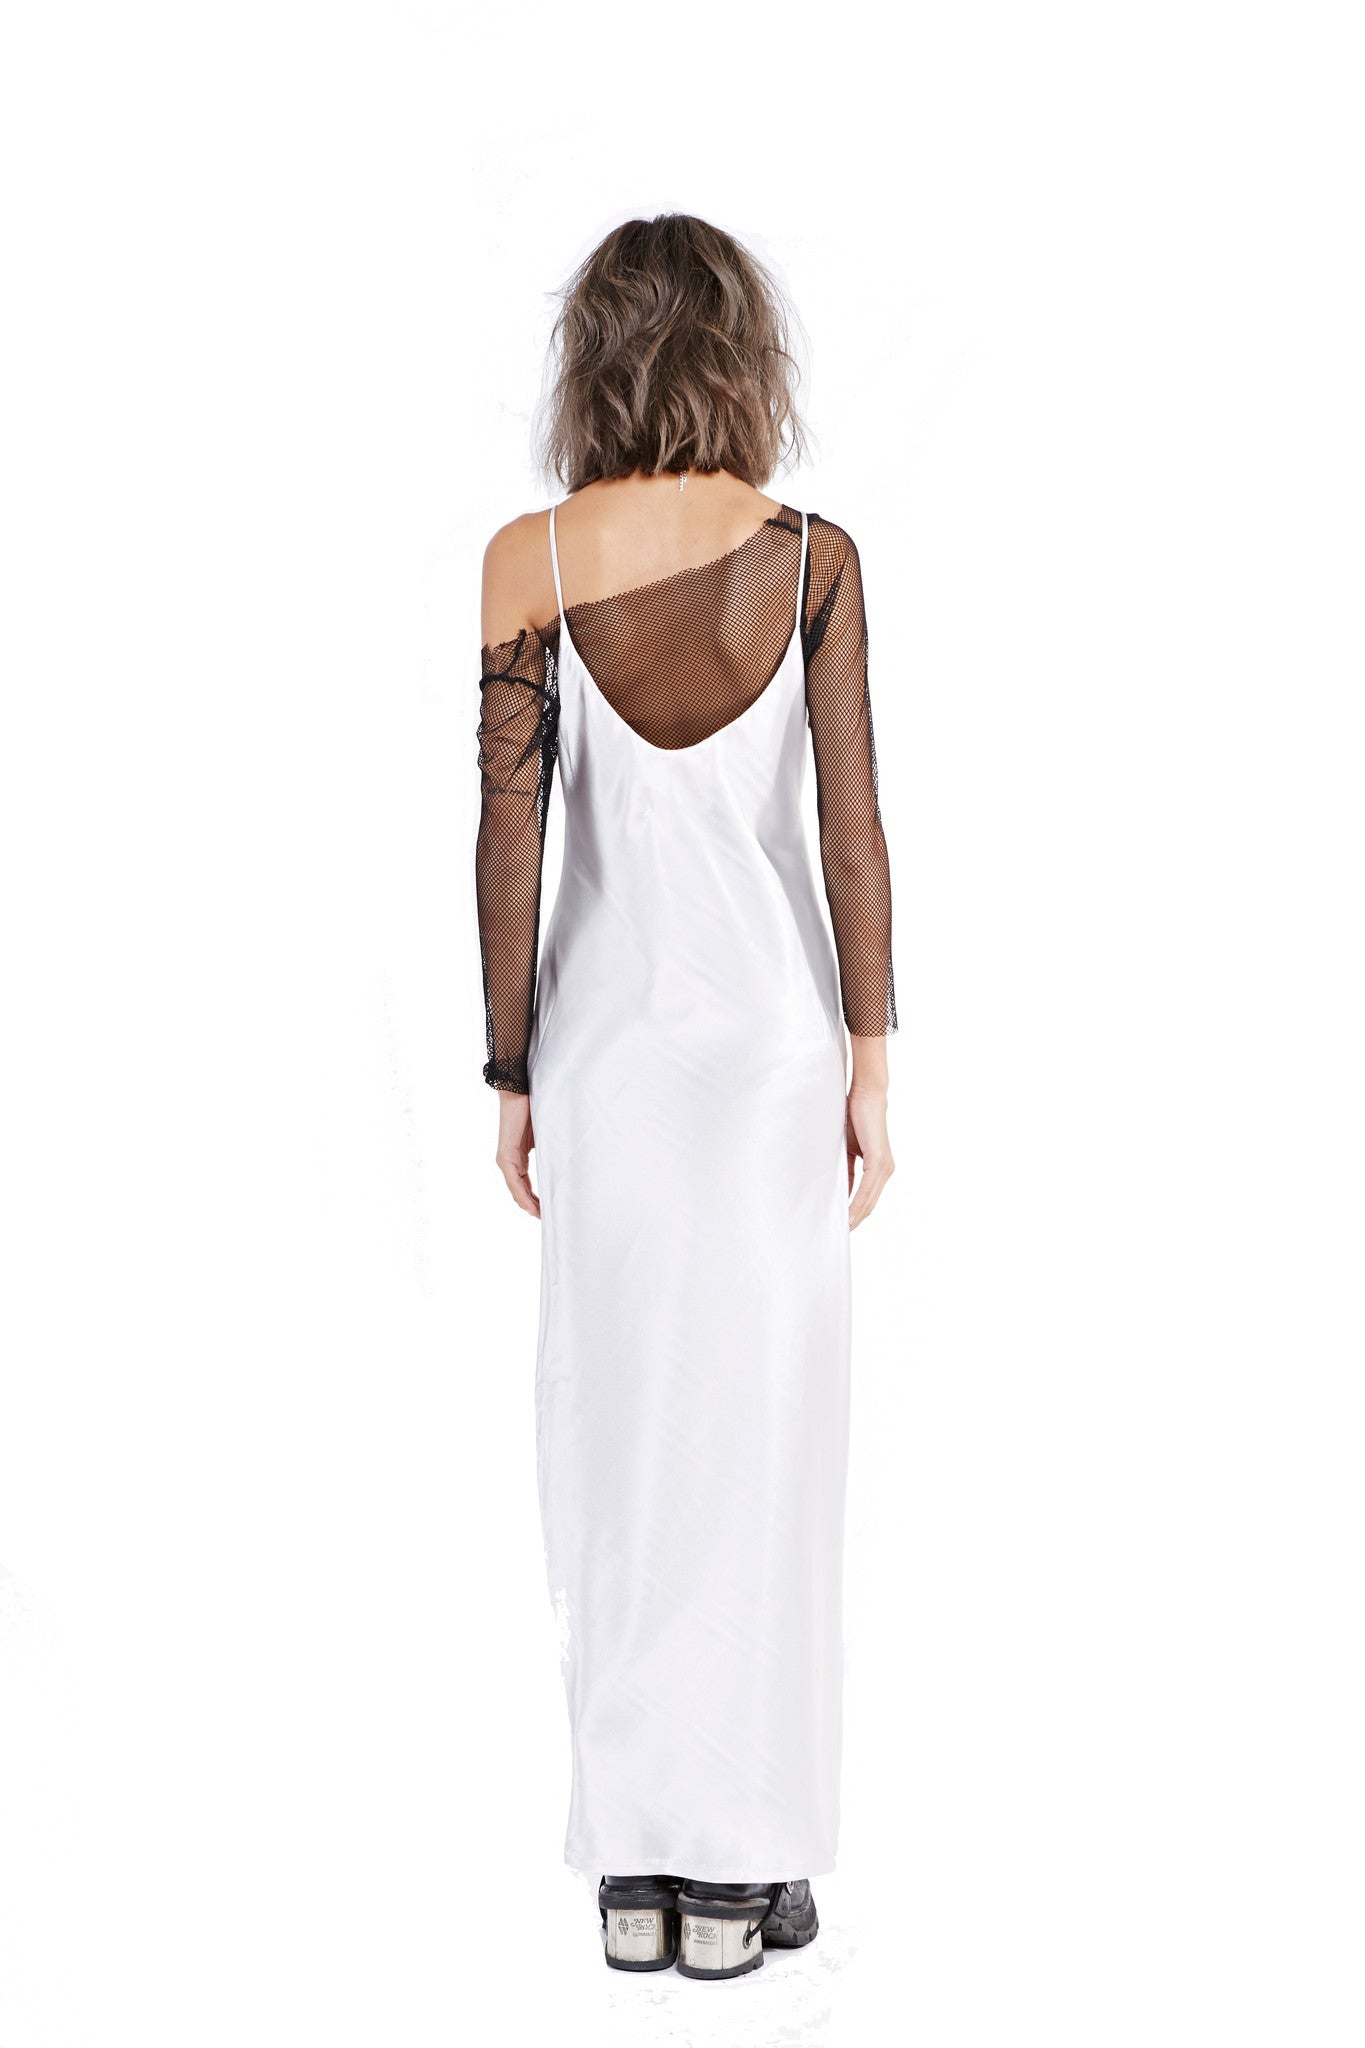 Lost Slip Dress - Off White